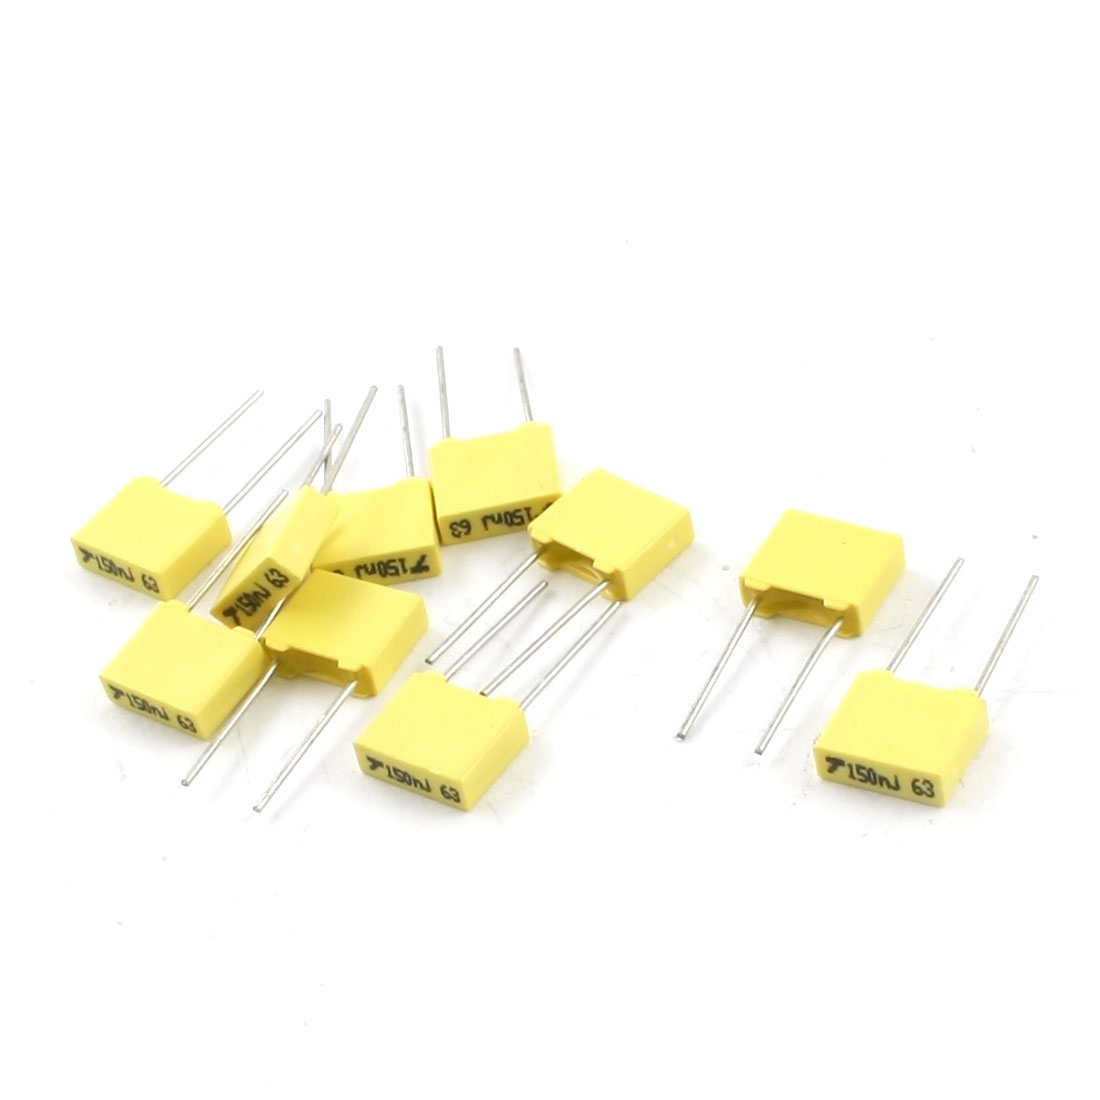 10pcs Radial Lead Mylar Polyester Film Capacitors 63V 150nF